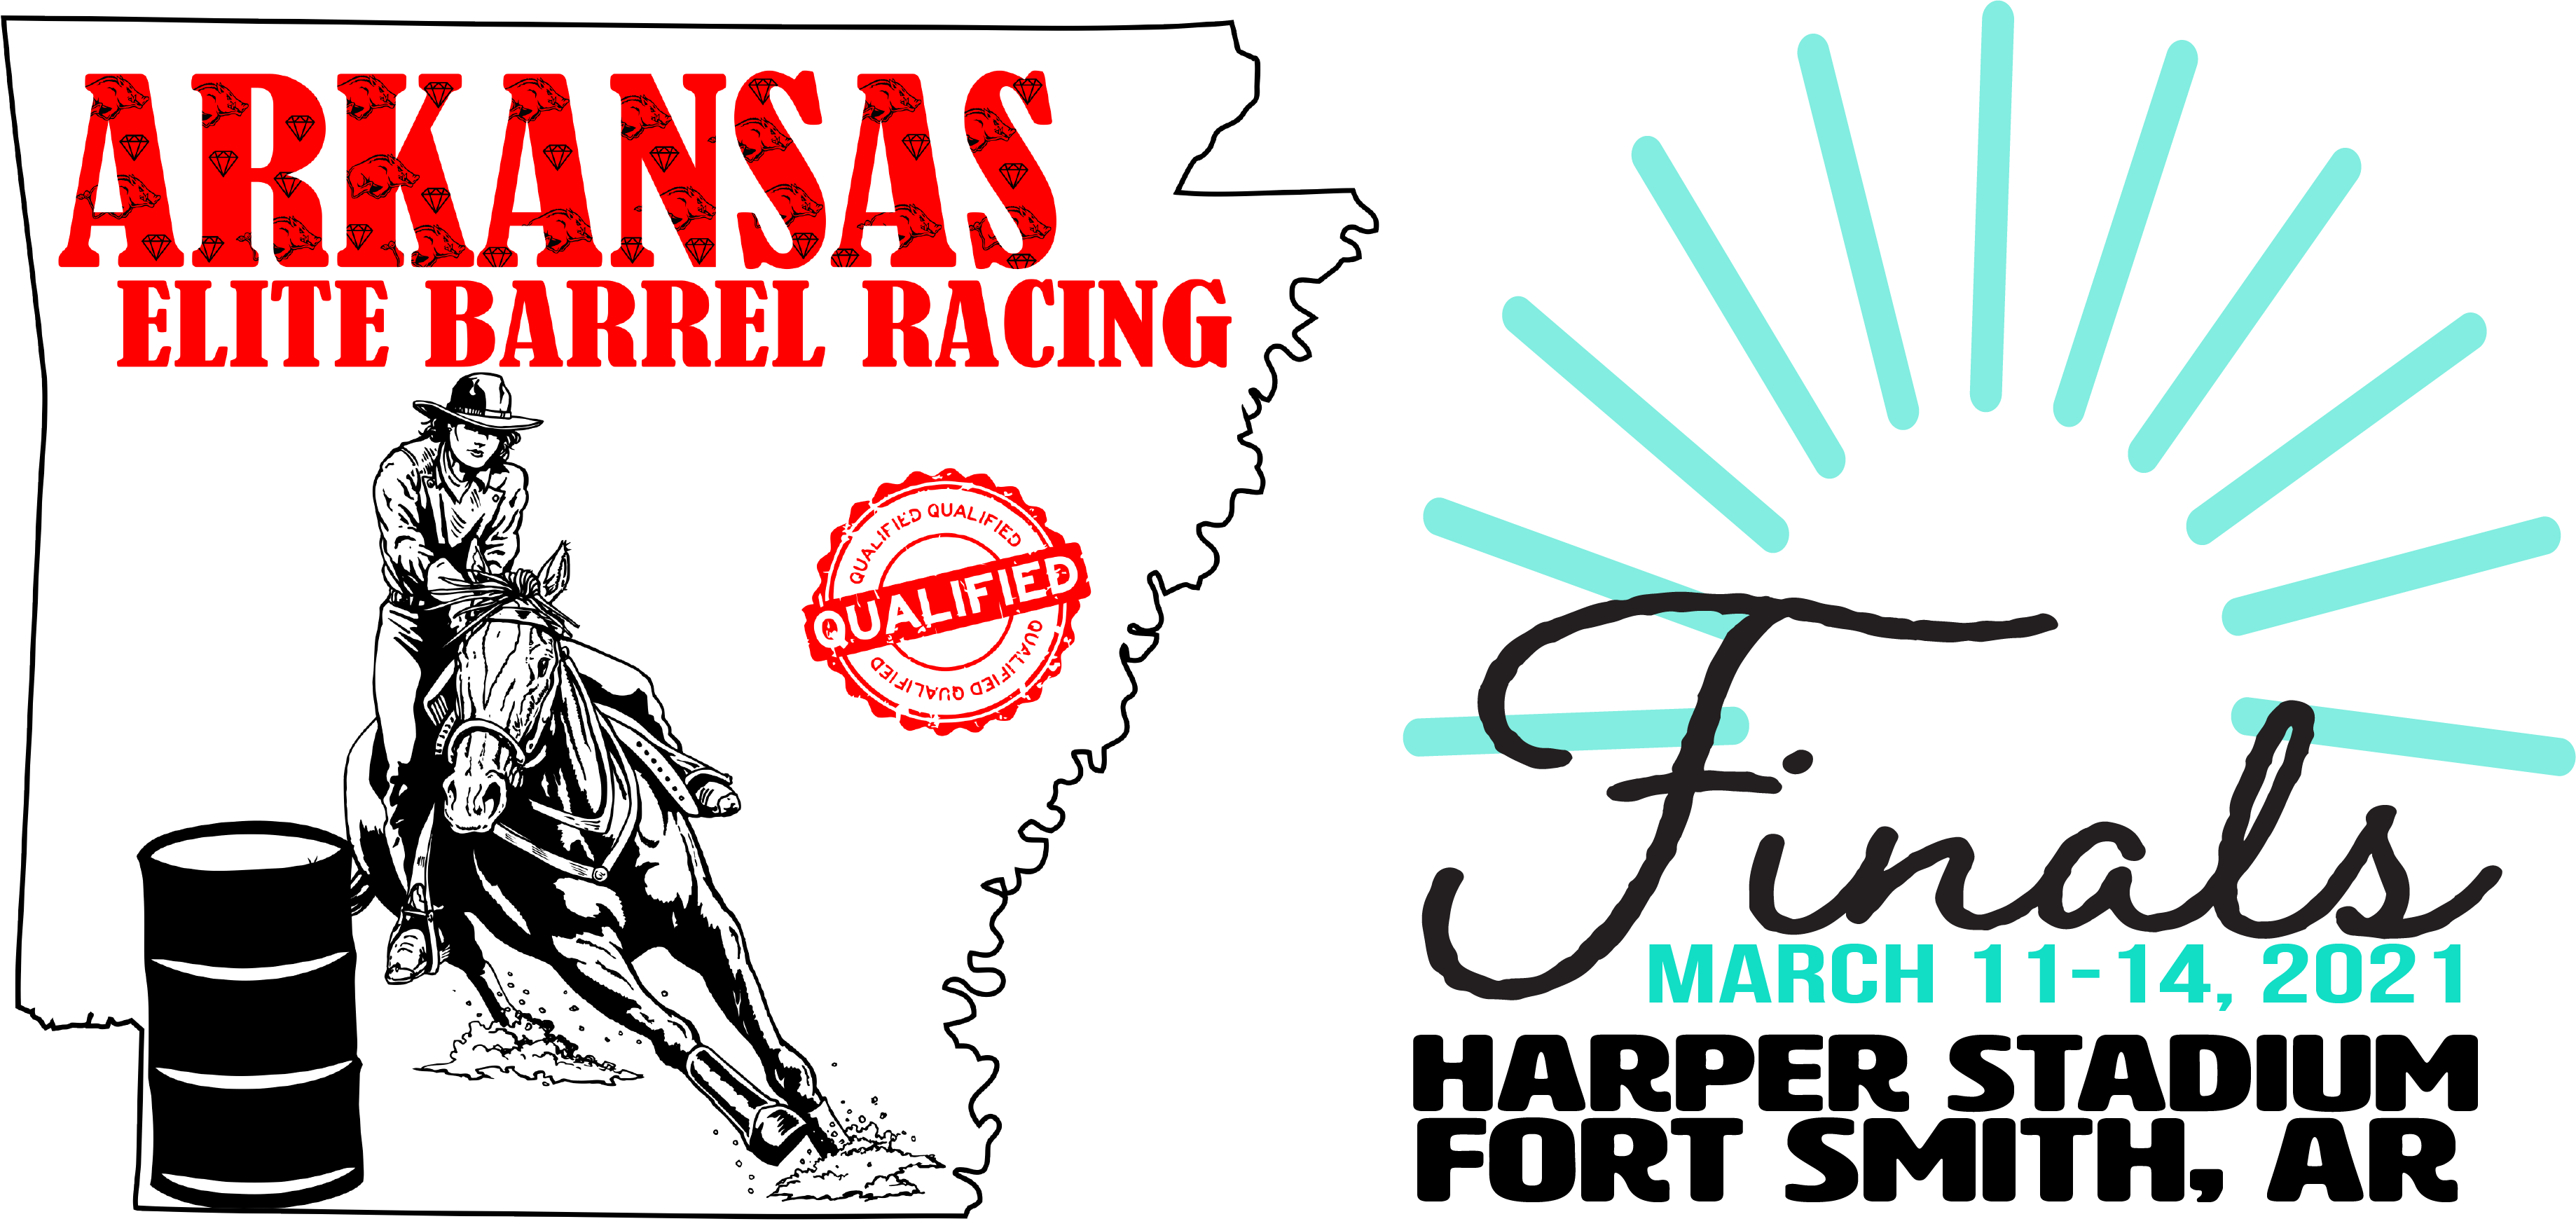 Arkansas Elite Barrel Racing Finals